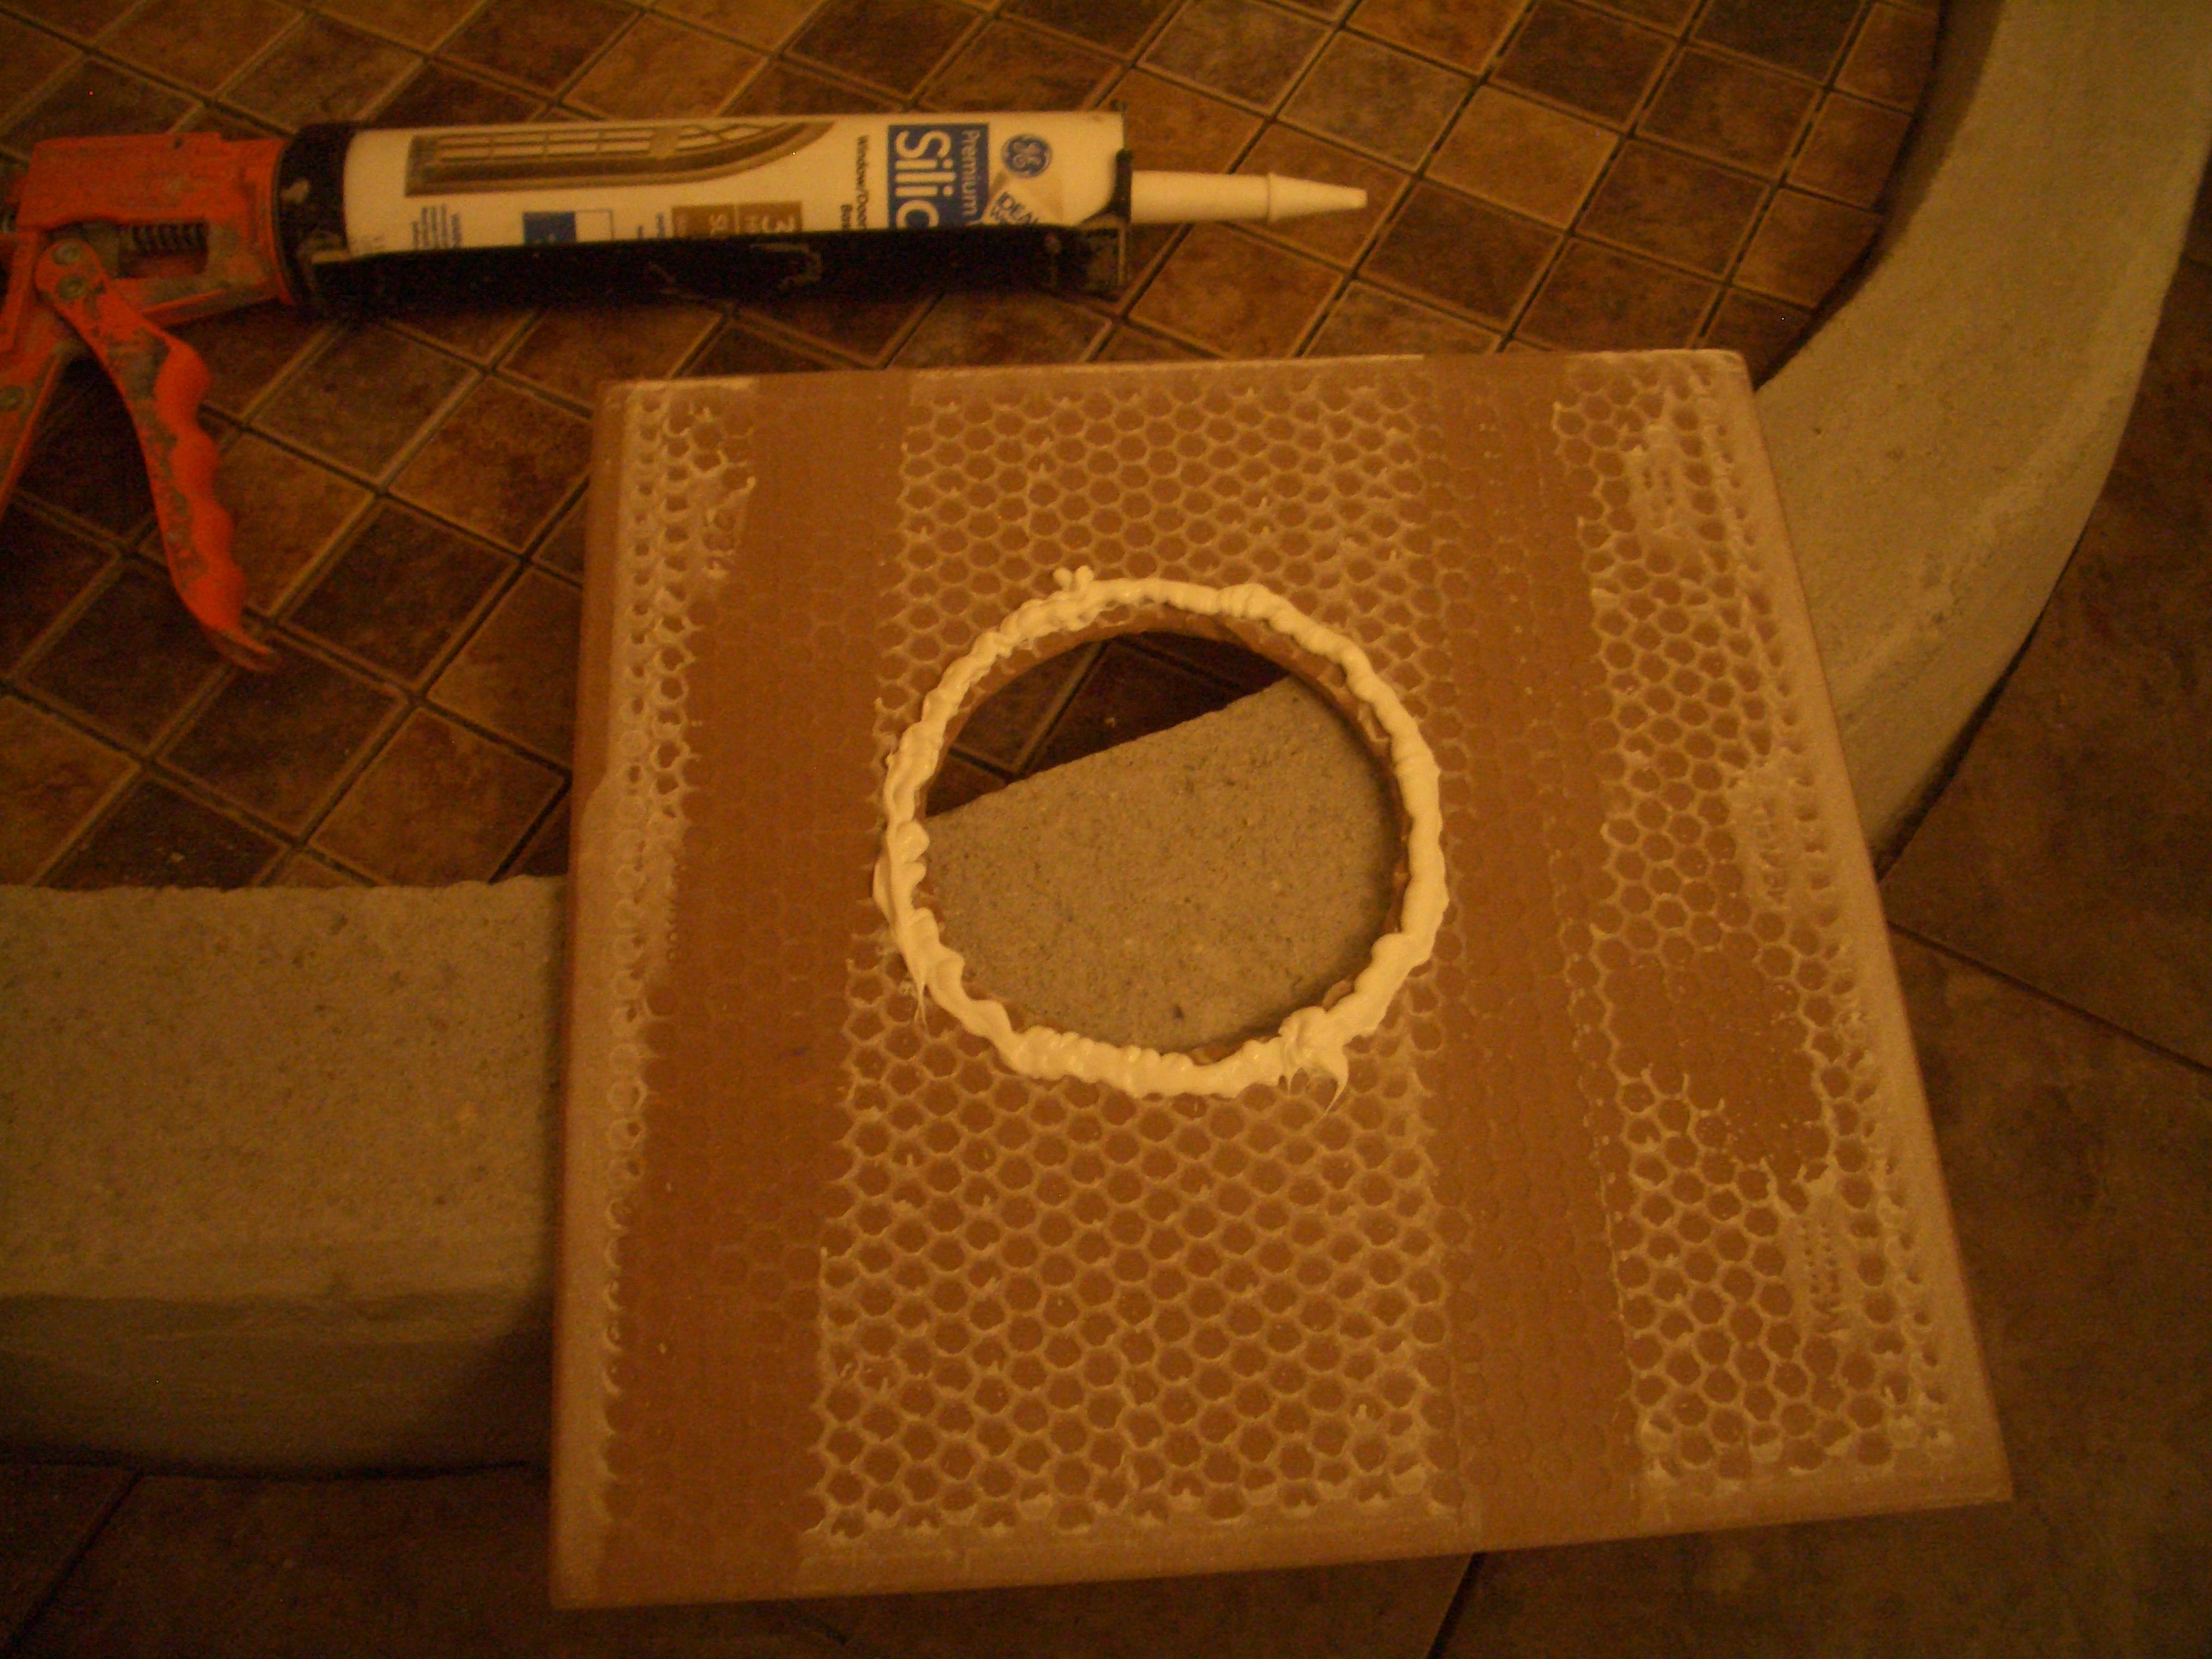 Cutout holes for fixtures in shower wall tile bead of silicone around hole perimeter dailygadgetfo Images